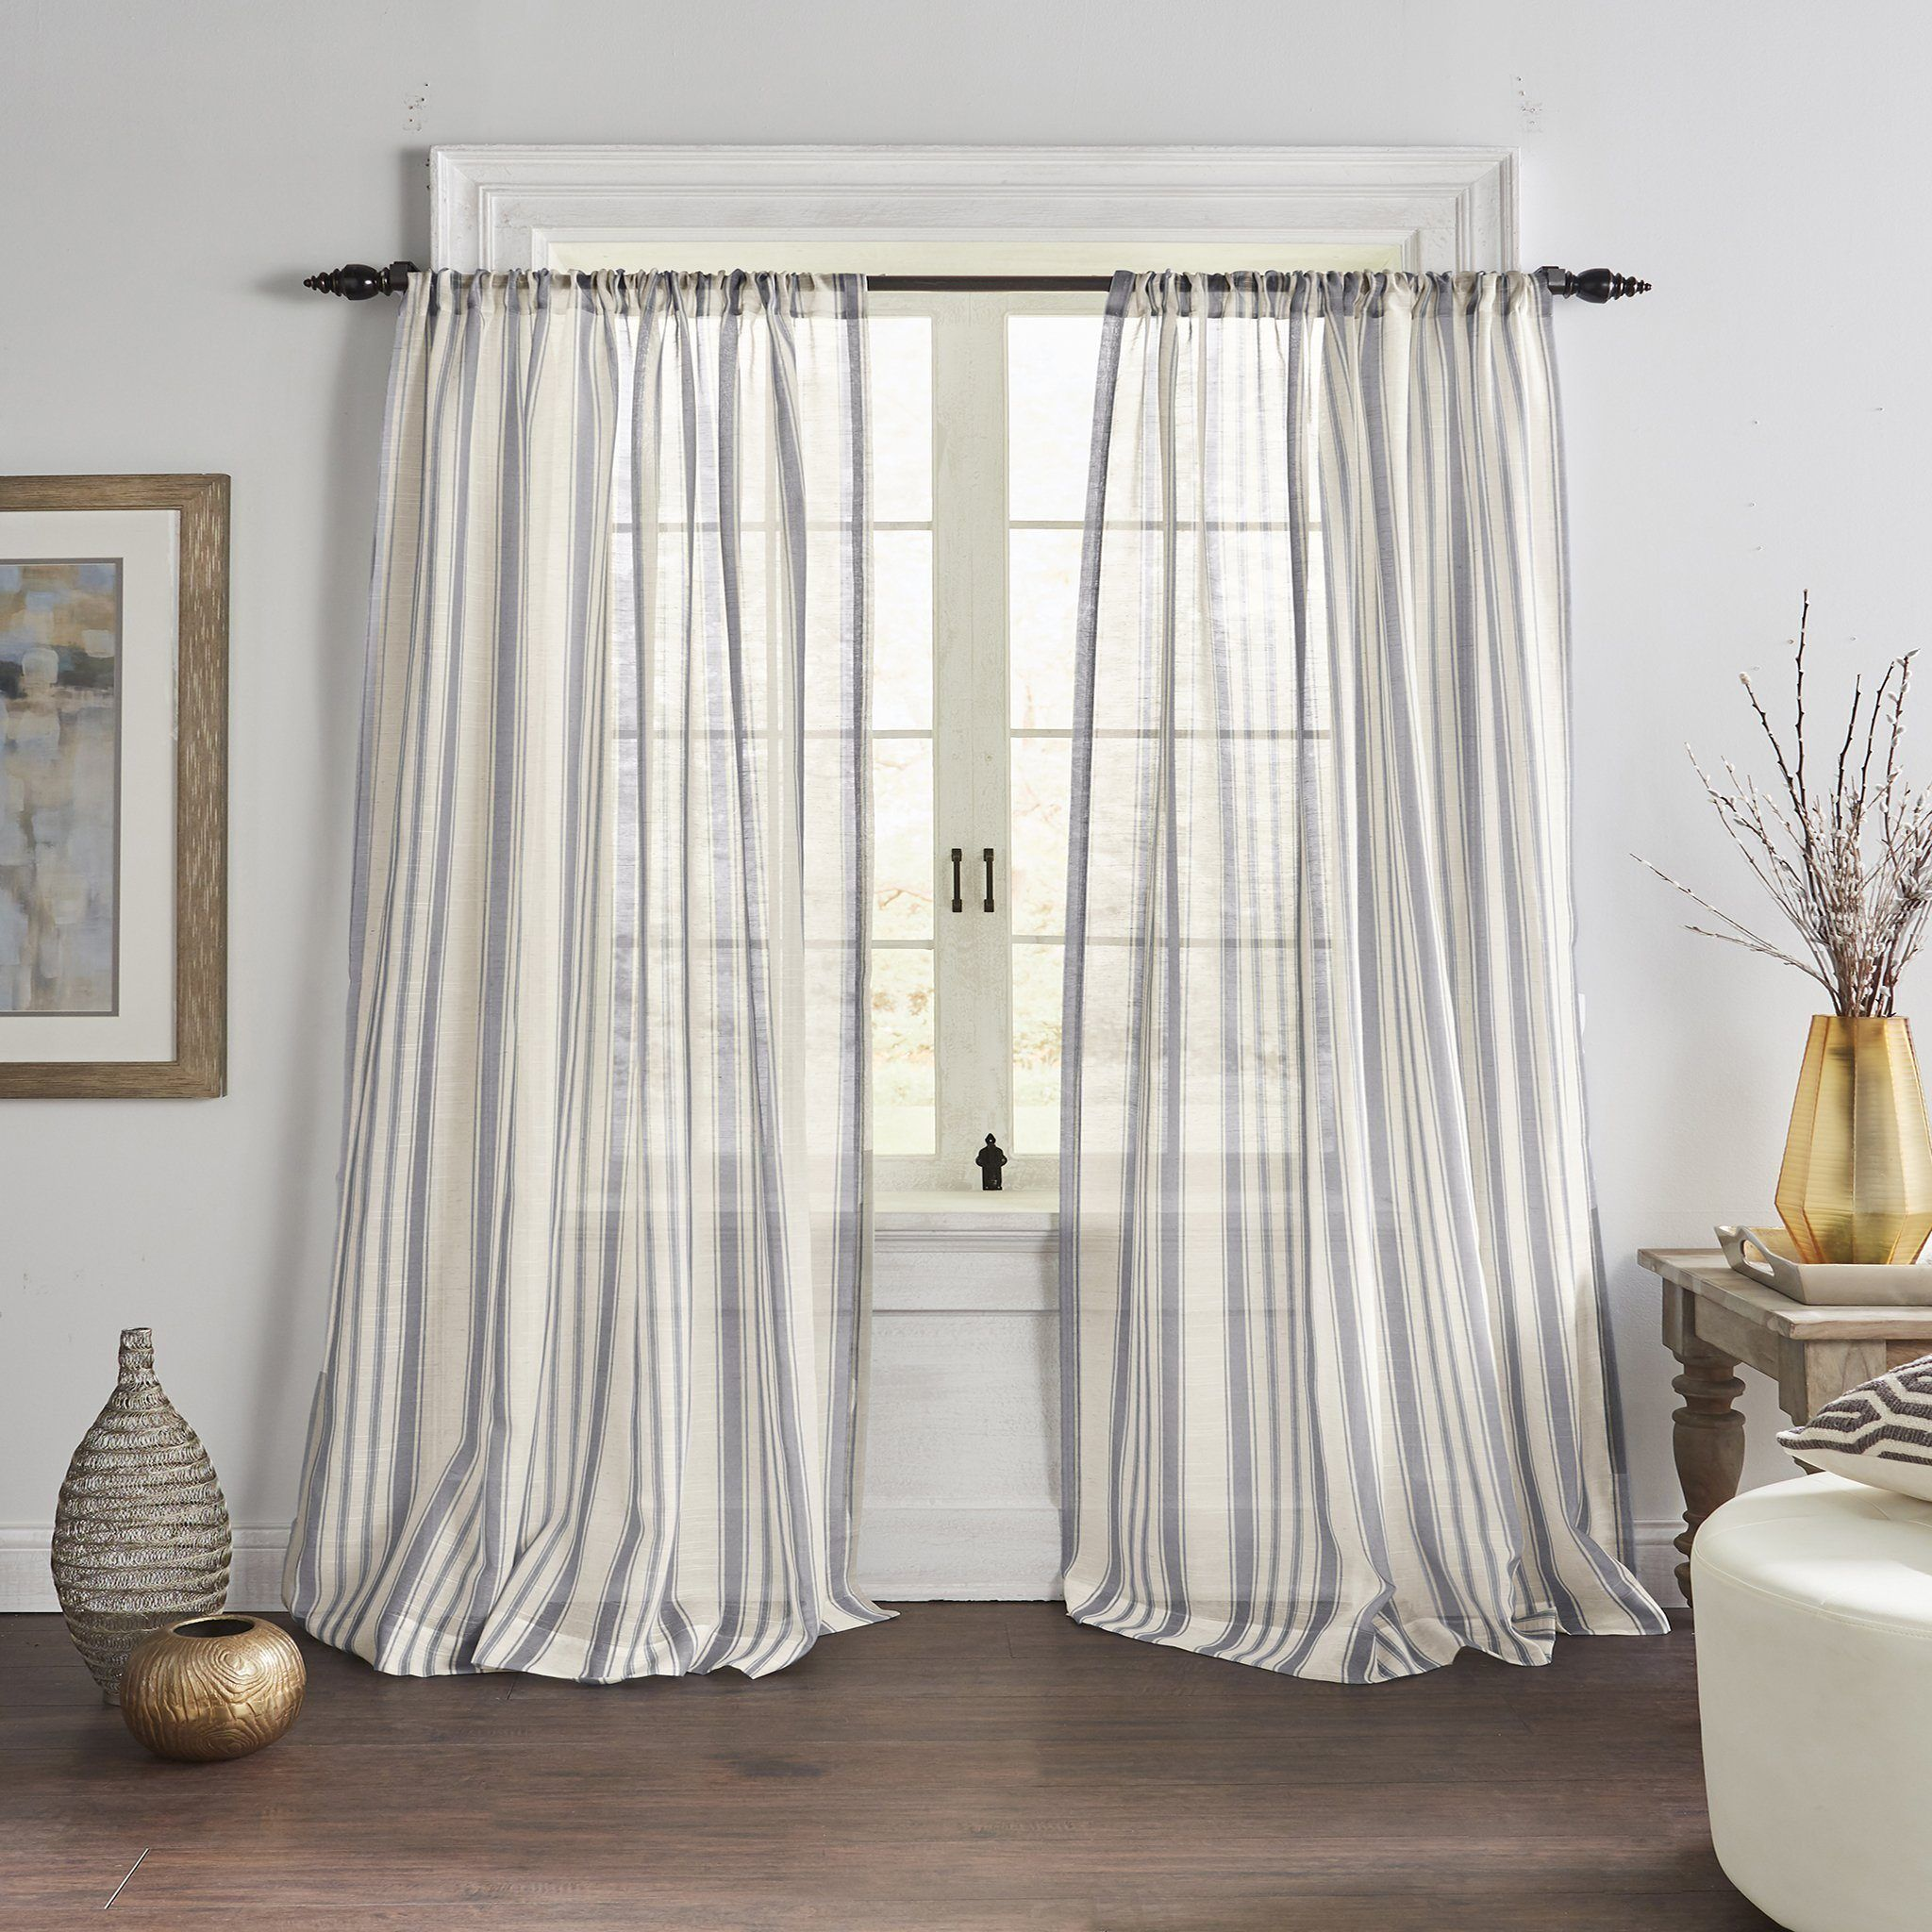 The Hampton Striped Sheer Features A Poly Linen Texture That Has A